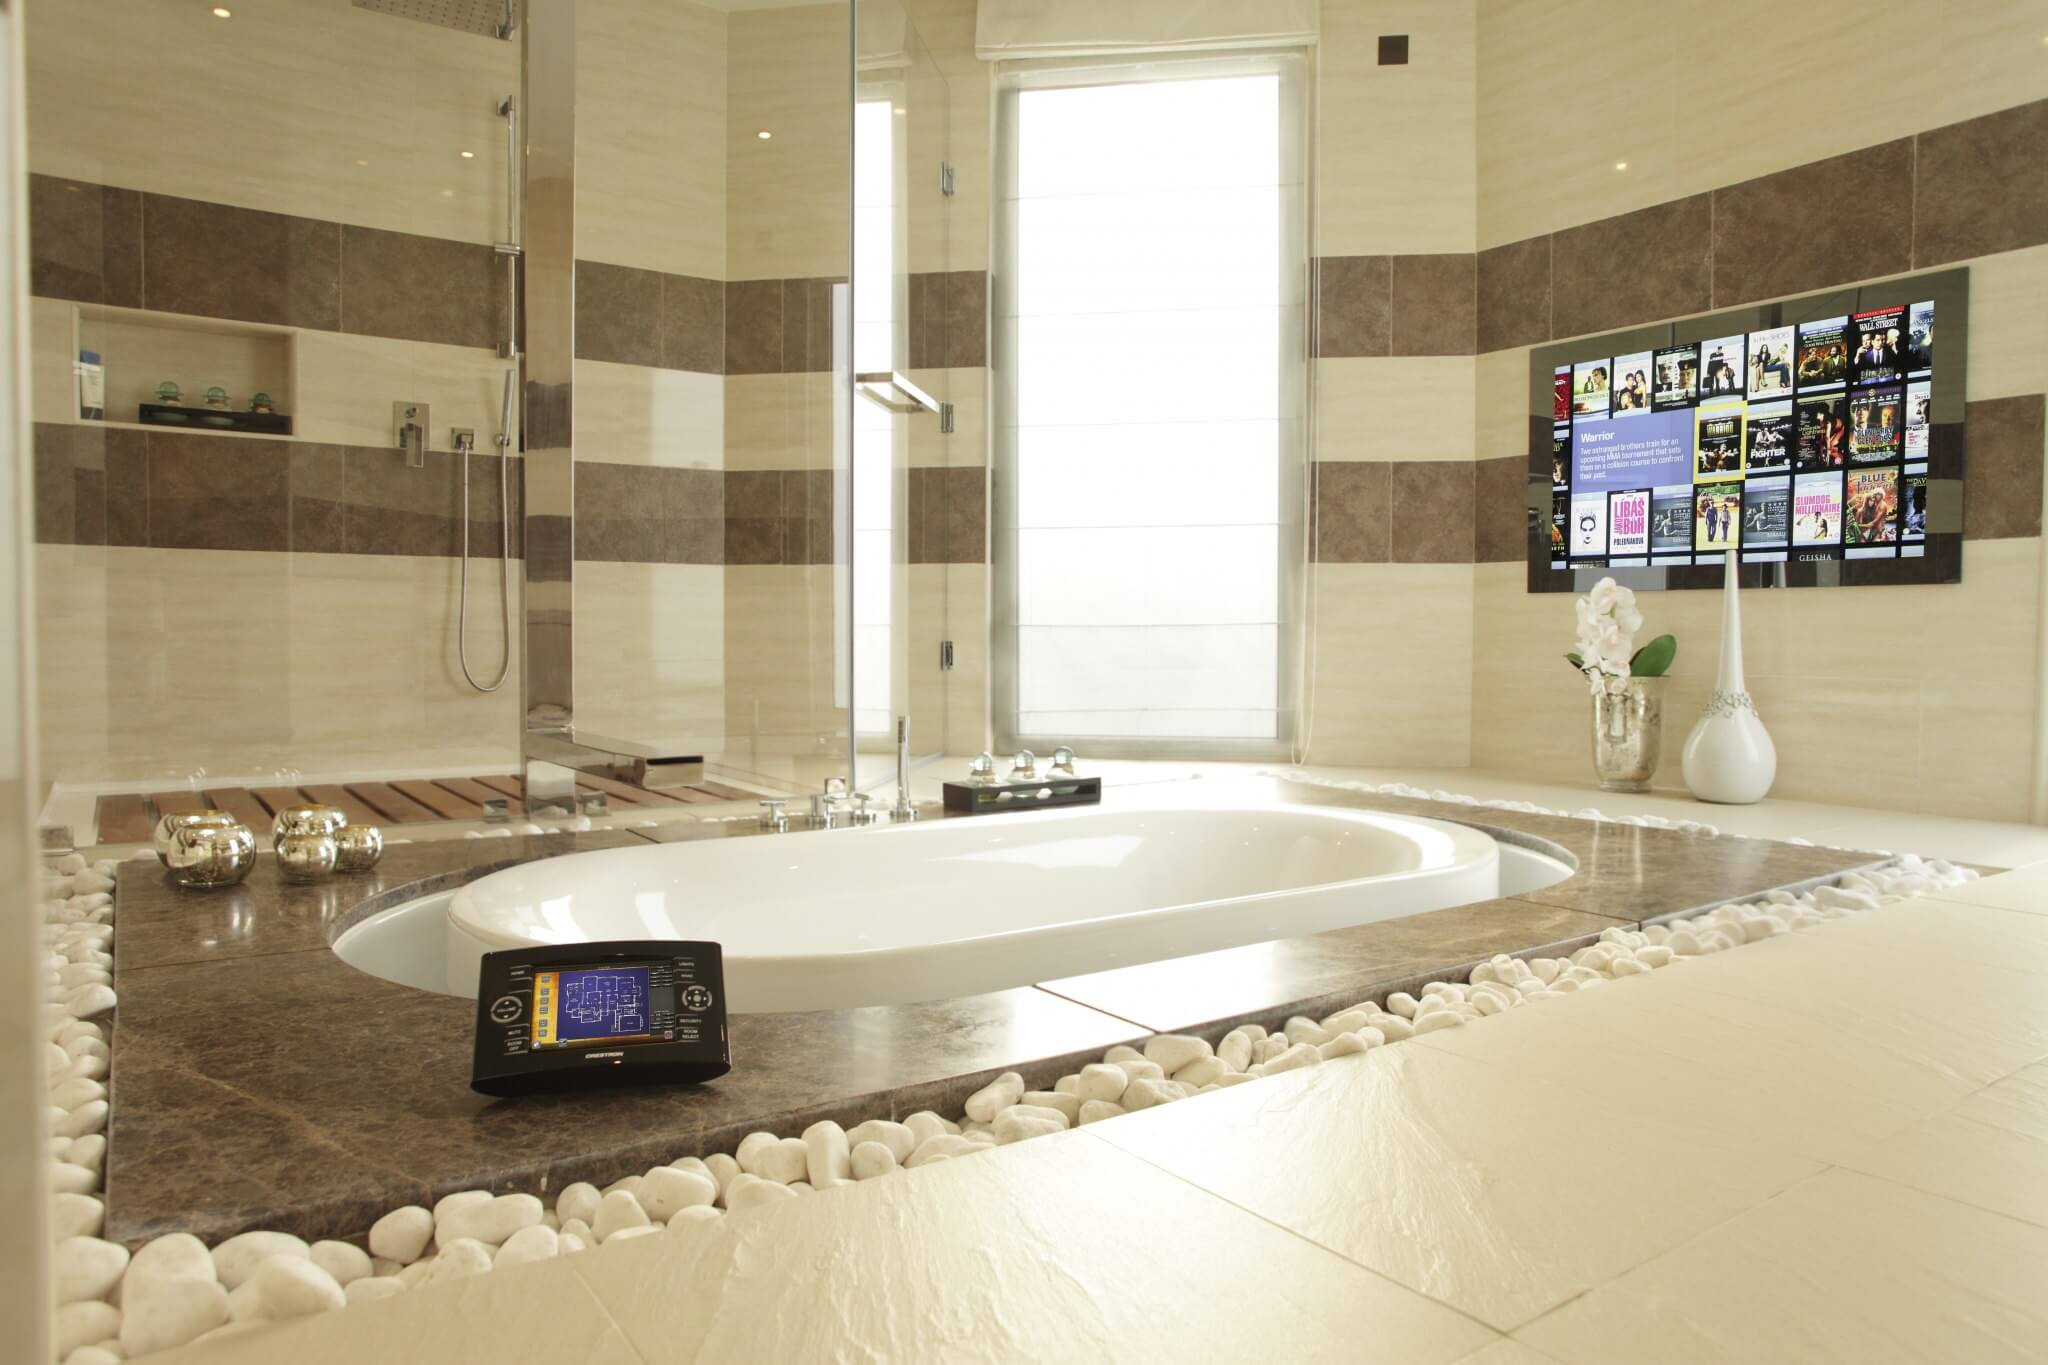 Bathroom-showing-Touchpanel-Mirror-TV